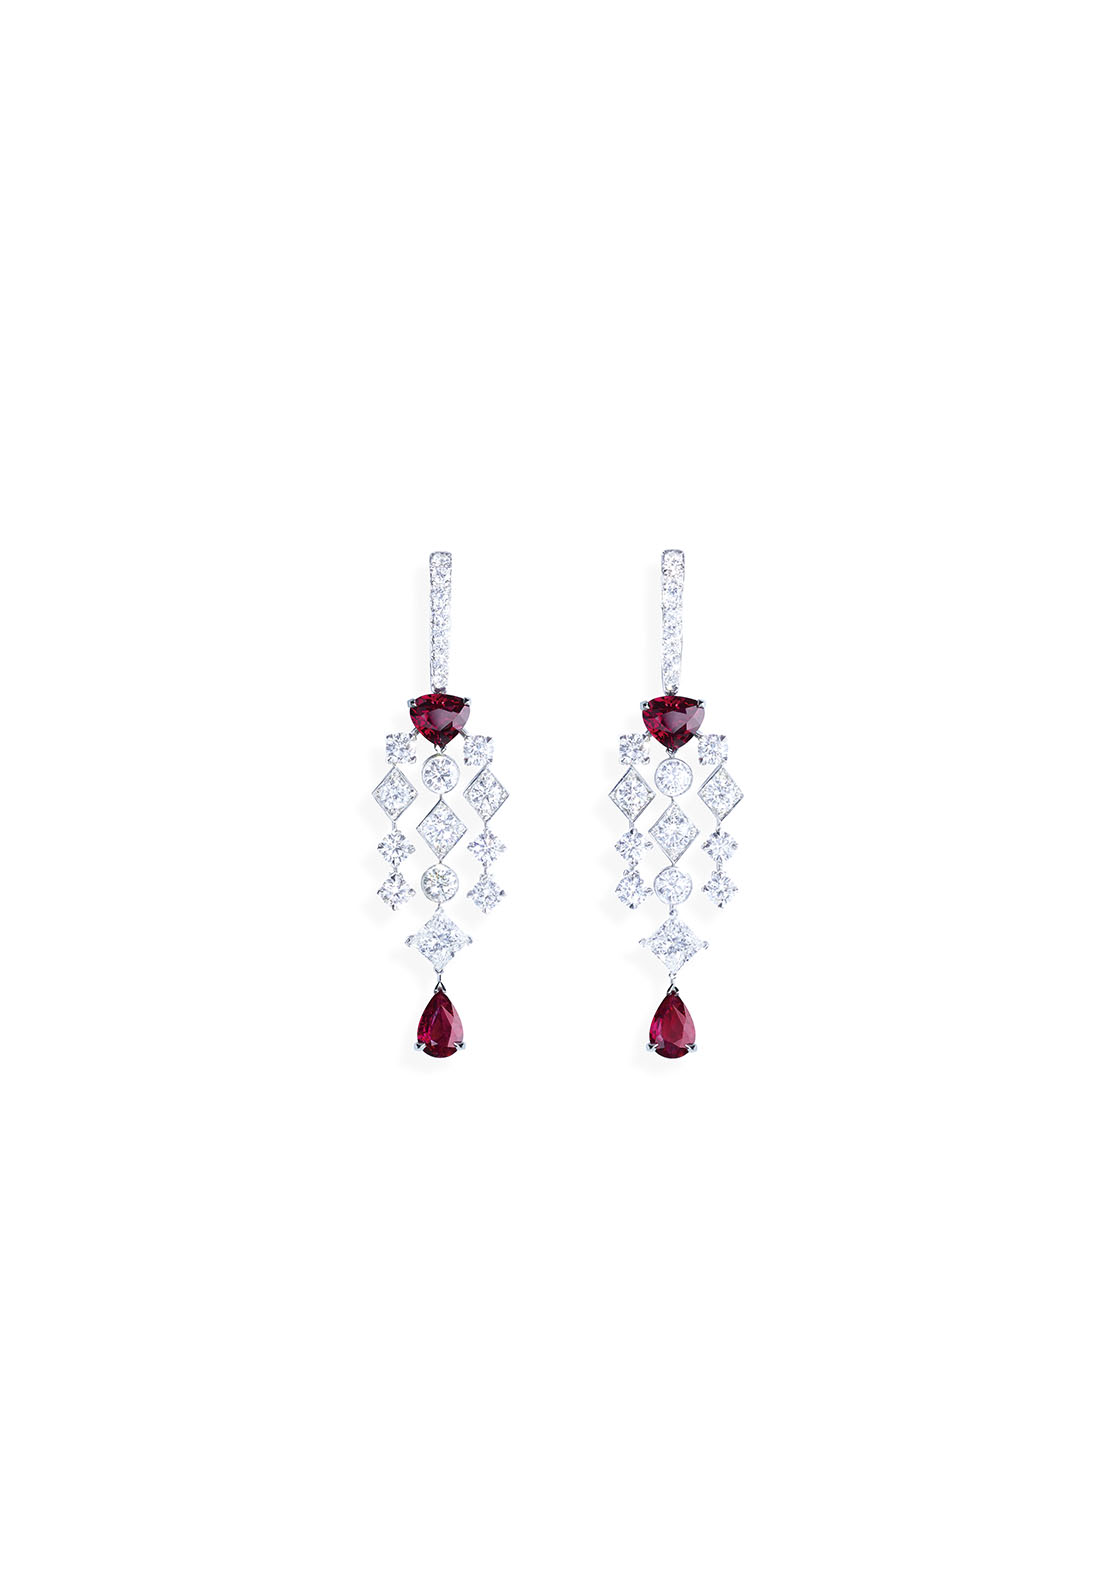 Earrings in platinum set with 4 pear-shaped rubies (approx. 4.23 cts), 2 princess-cut diamonds (approx. 1.41 cts) and 38 brilliant-cut diamonds (approx. 4.42 cts).